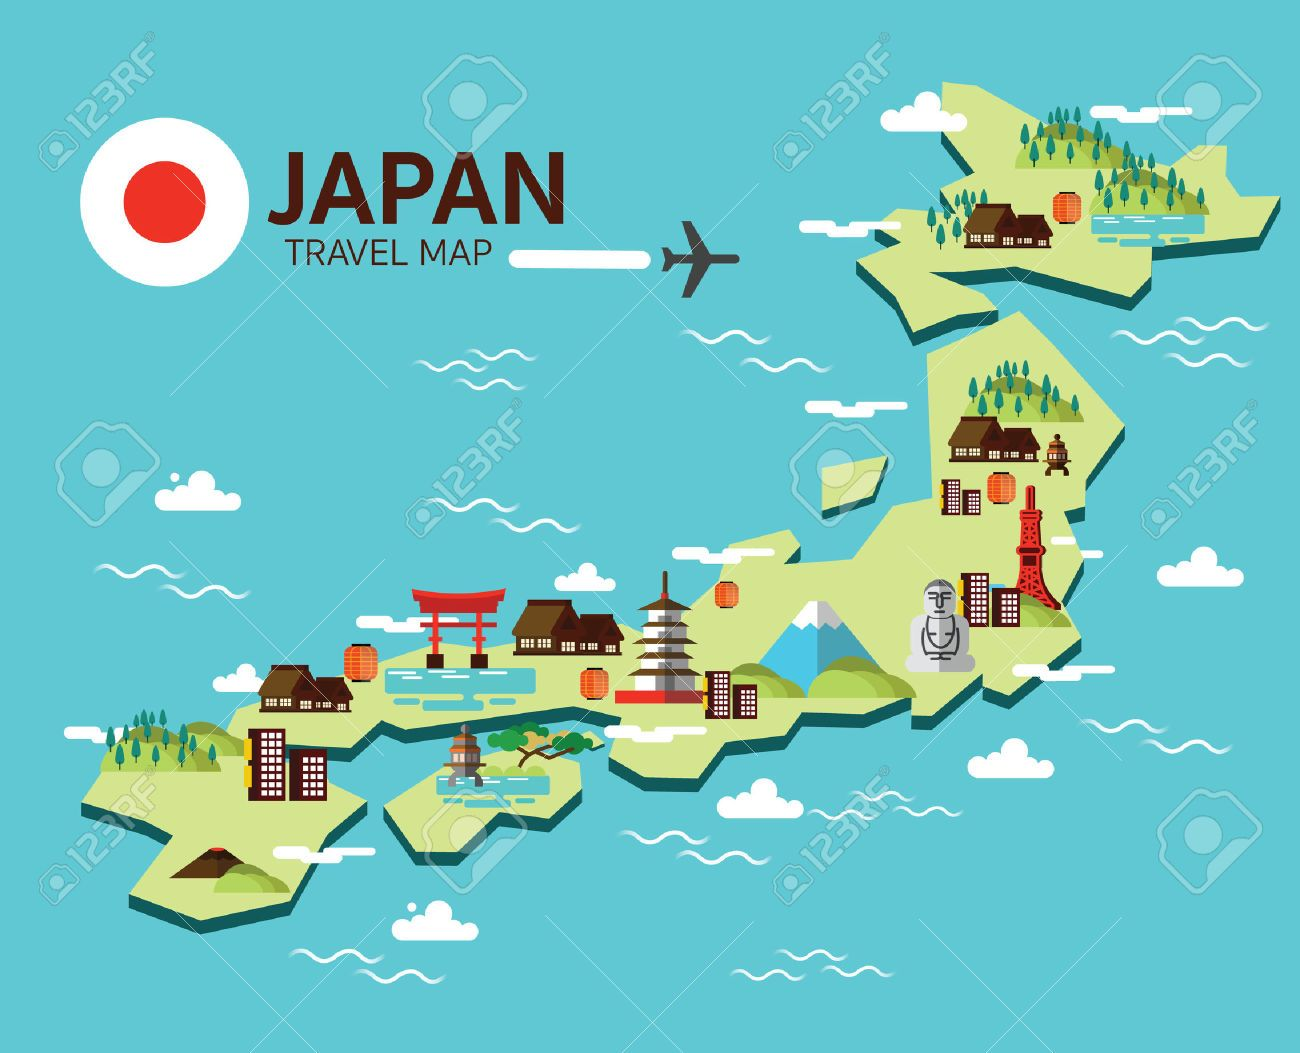 Travel Map Clipart Japan Cliparts Stock Vector And Royalty Free - Japan map free